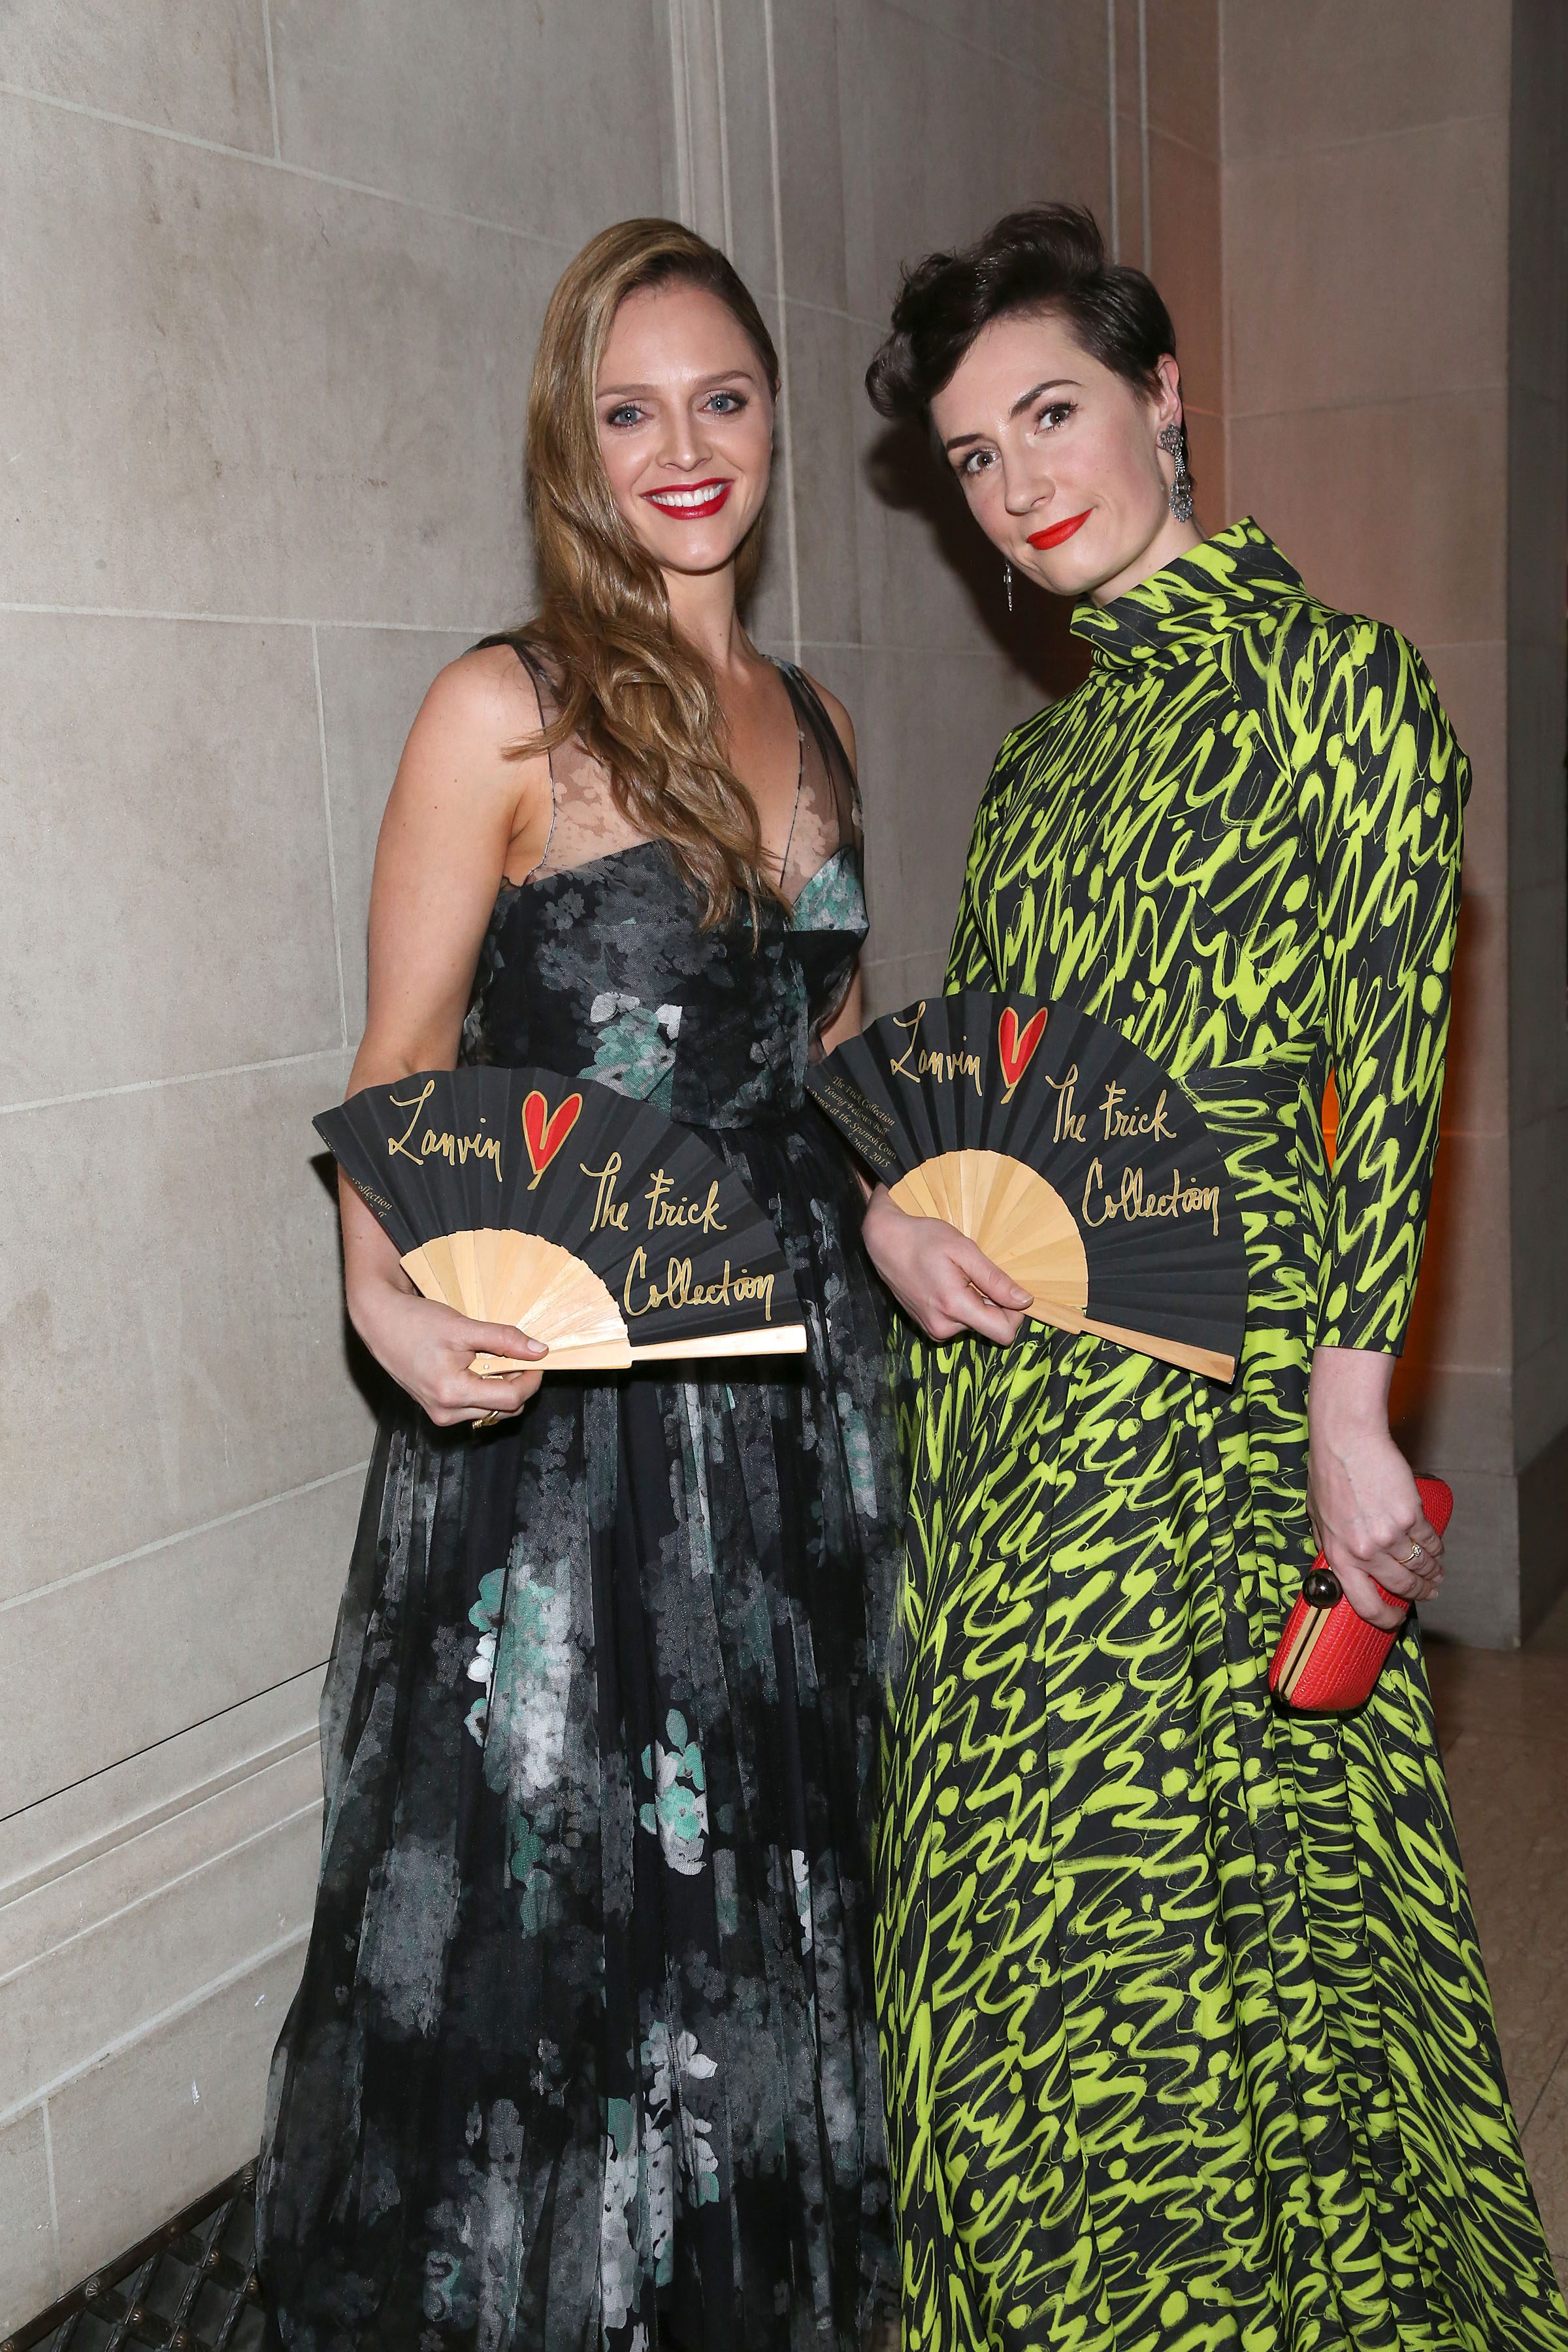 Angela Ledgerwood and Charlotte Greenough at the Frick Collection Young Fellows Ball (Photo: Patrick McMullan).